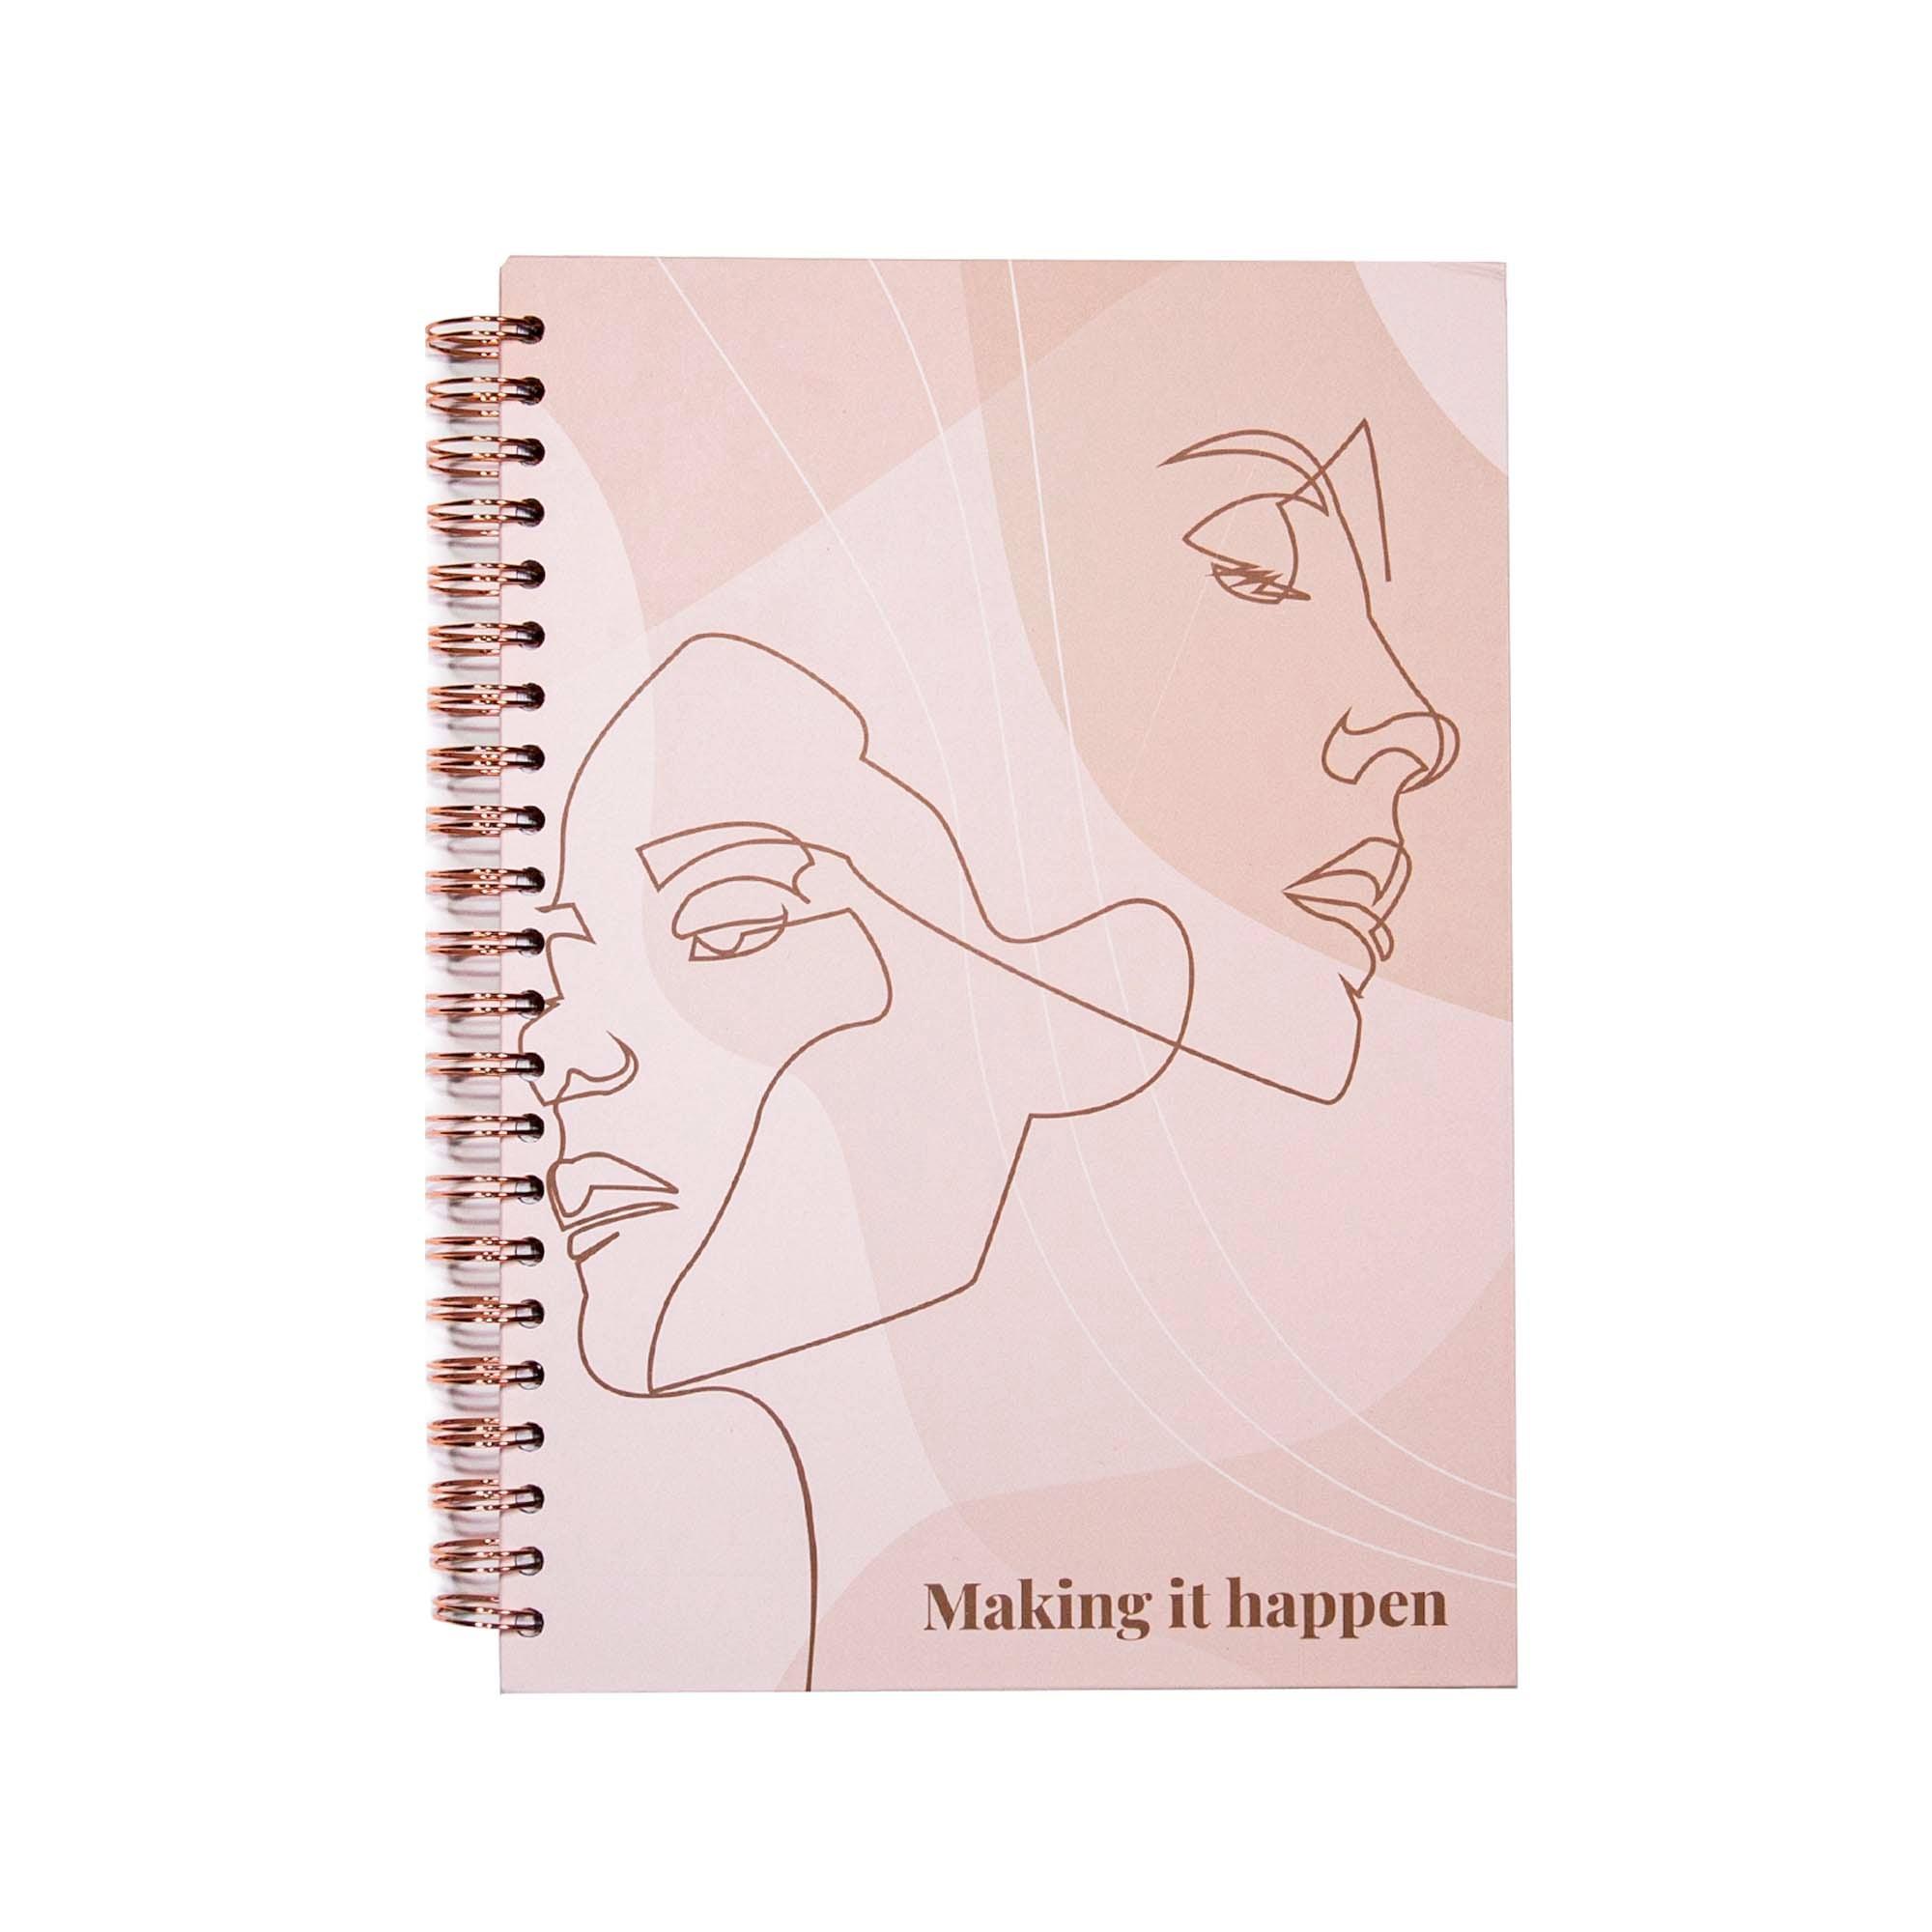 AchievHer x Prickly Pear Making it Happen Notebook